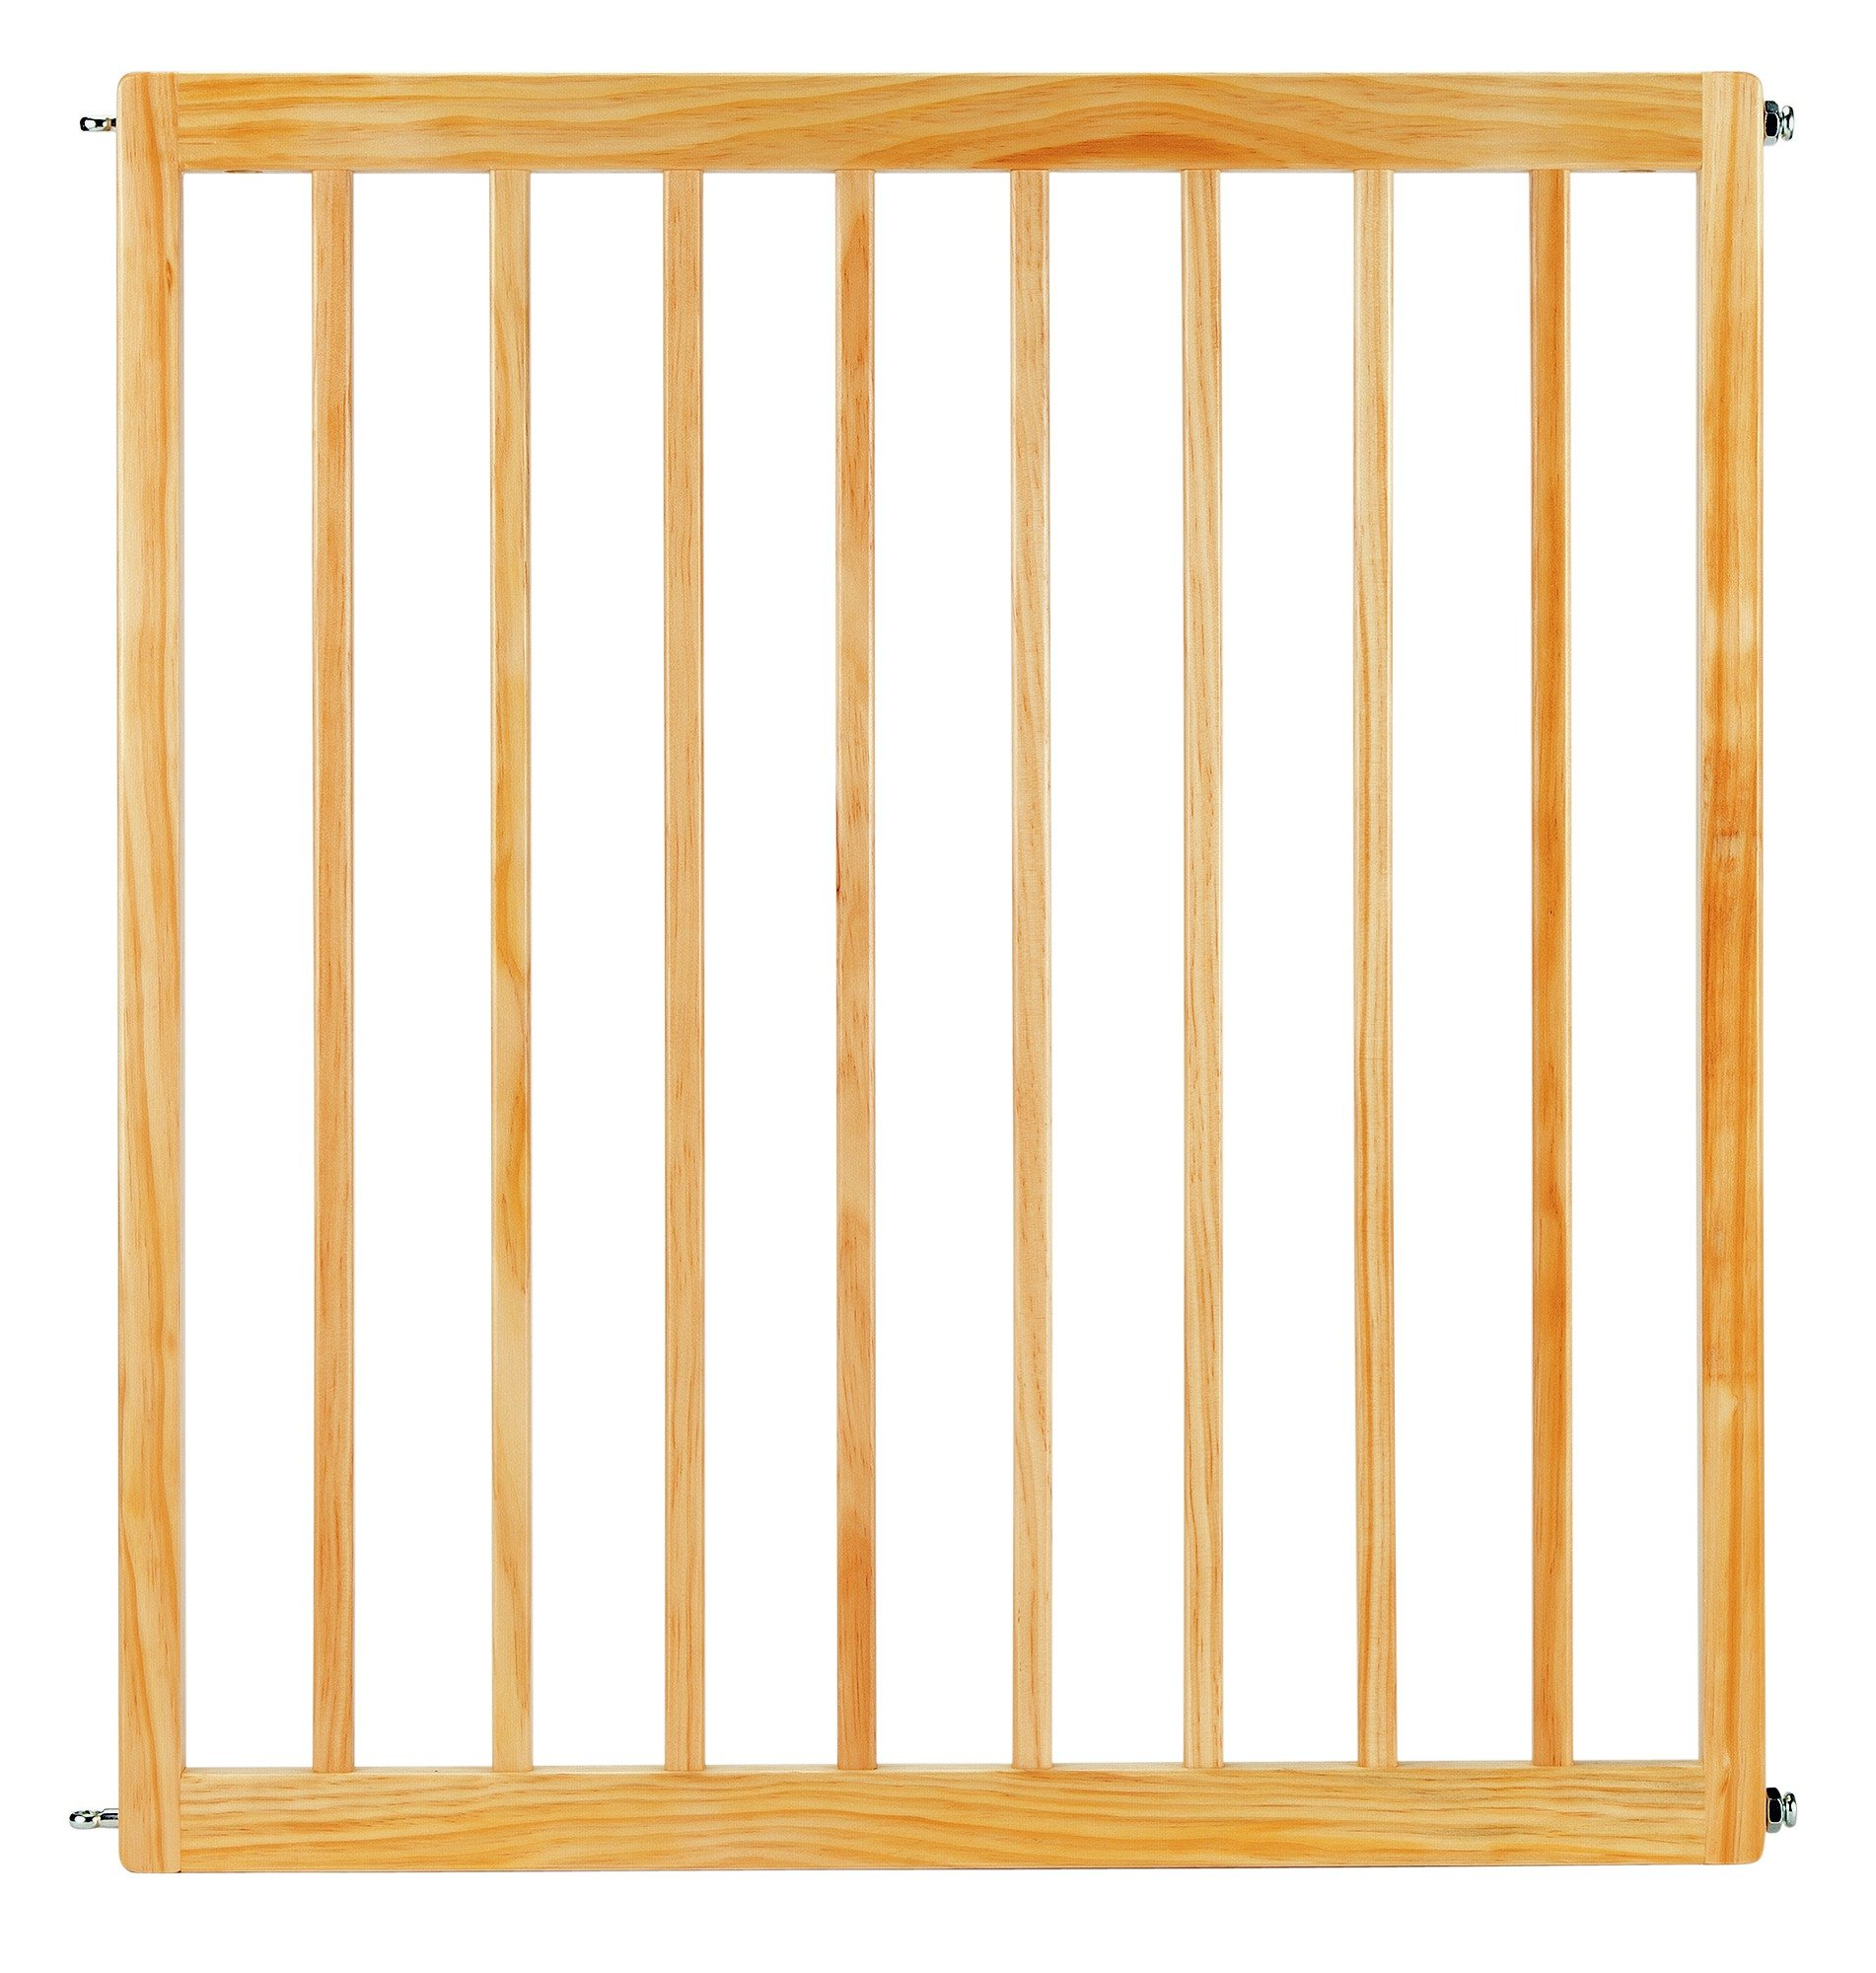 Babystart Wooden No Trip Gate